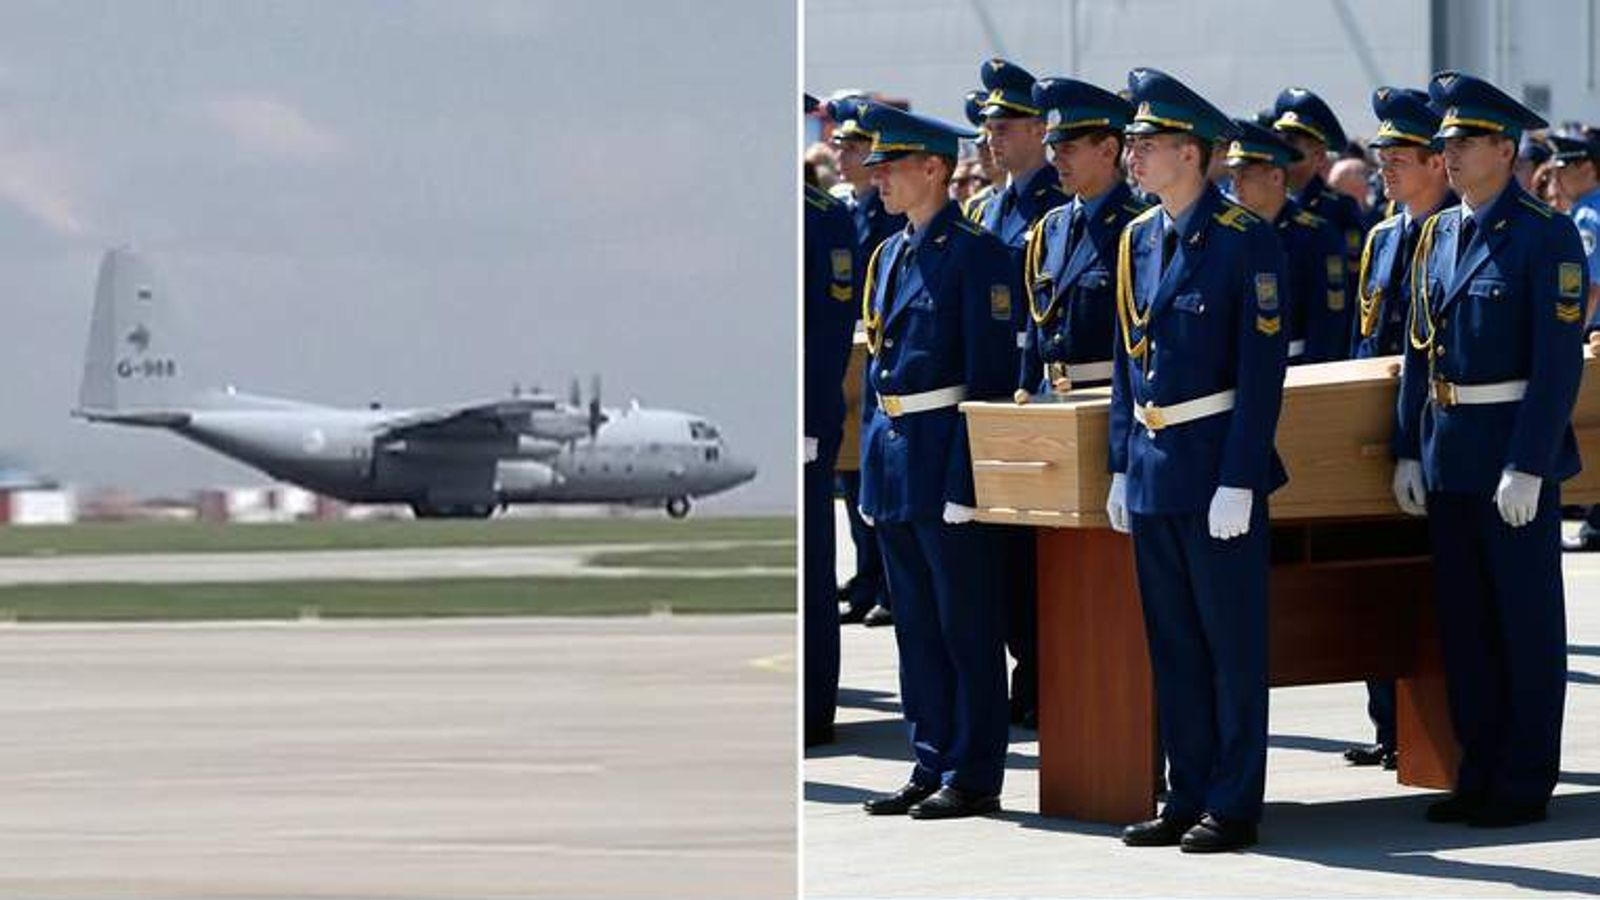 MH17: victims' bodies to be flown out of Ukraine